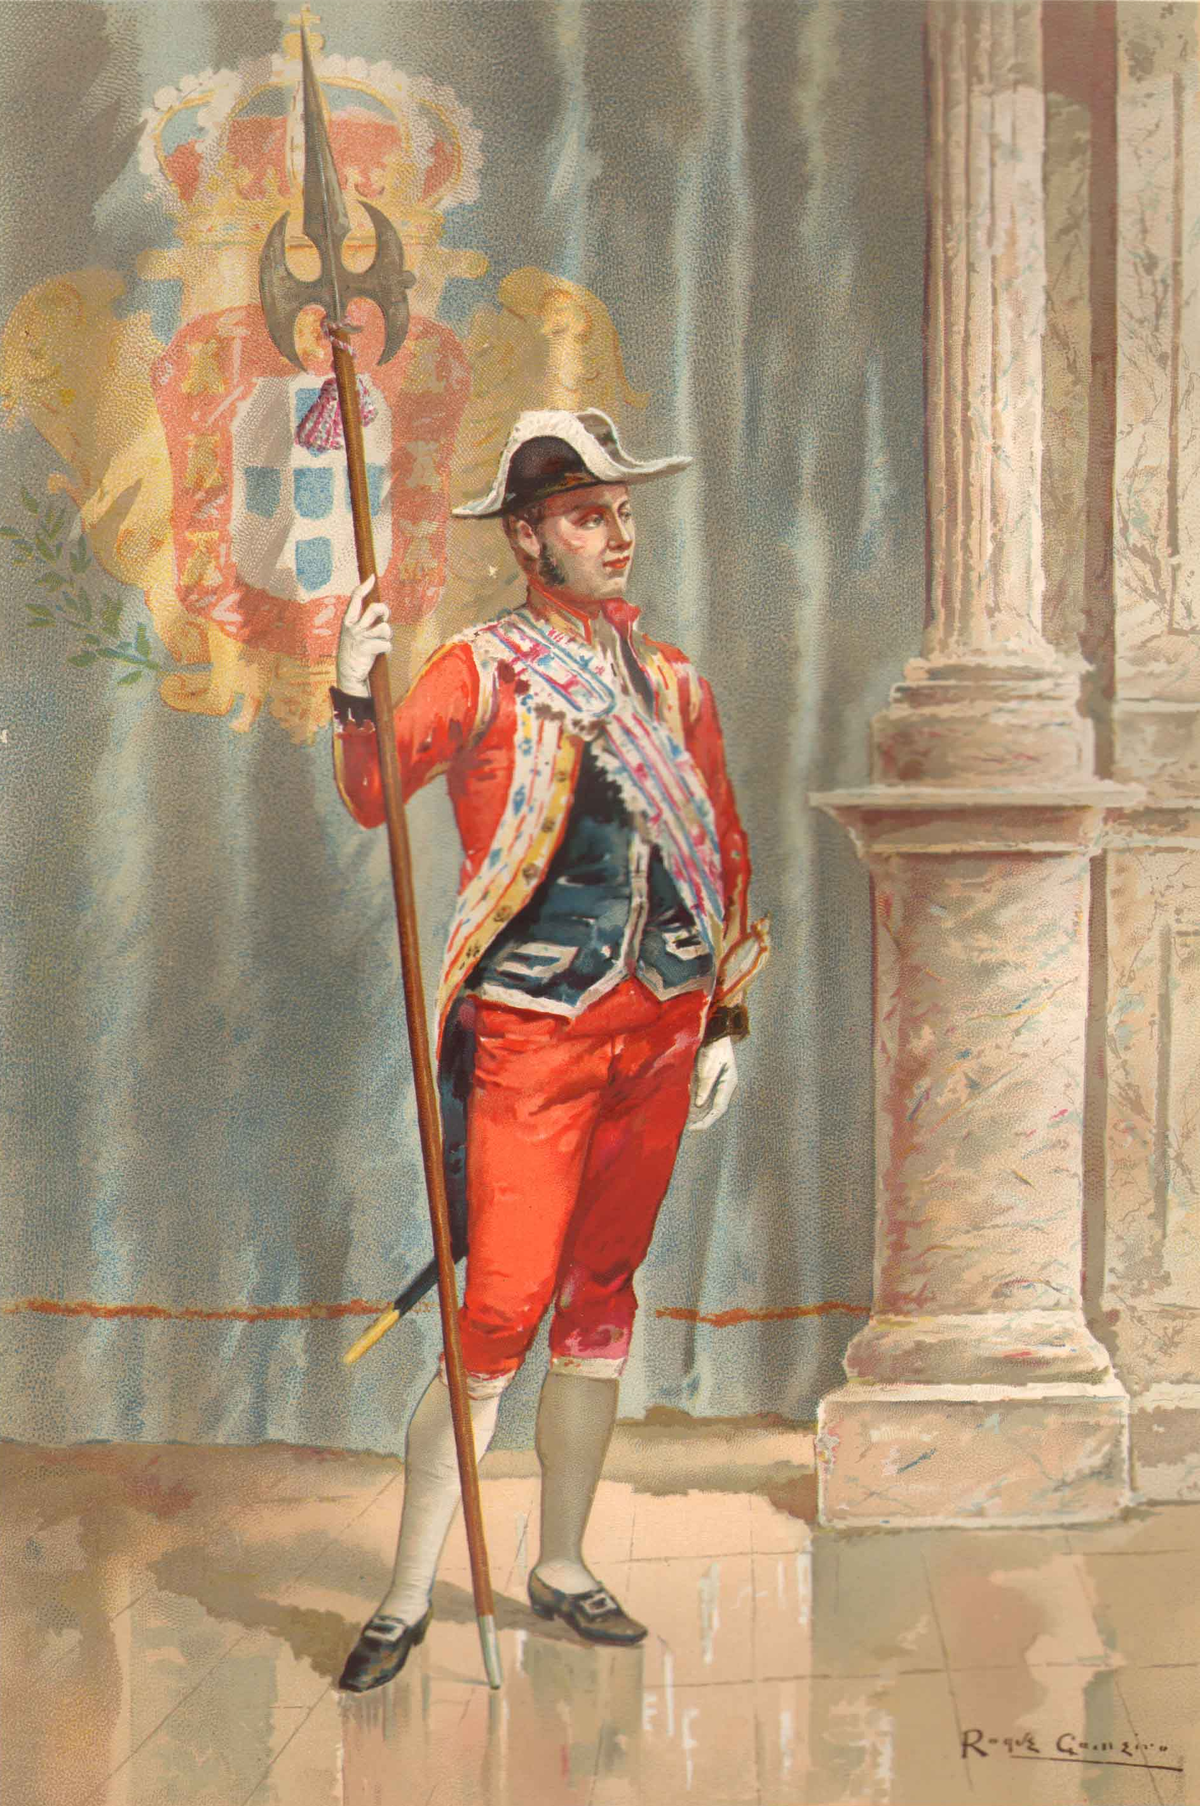 Royal Guard of the Archers - Wikipedia